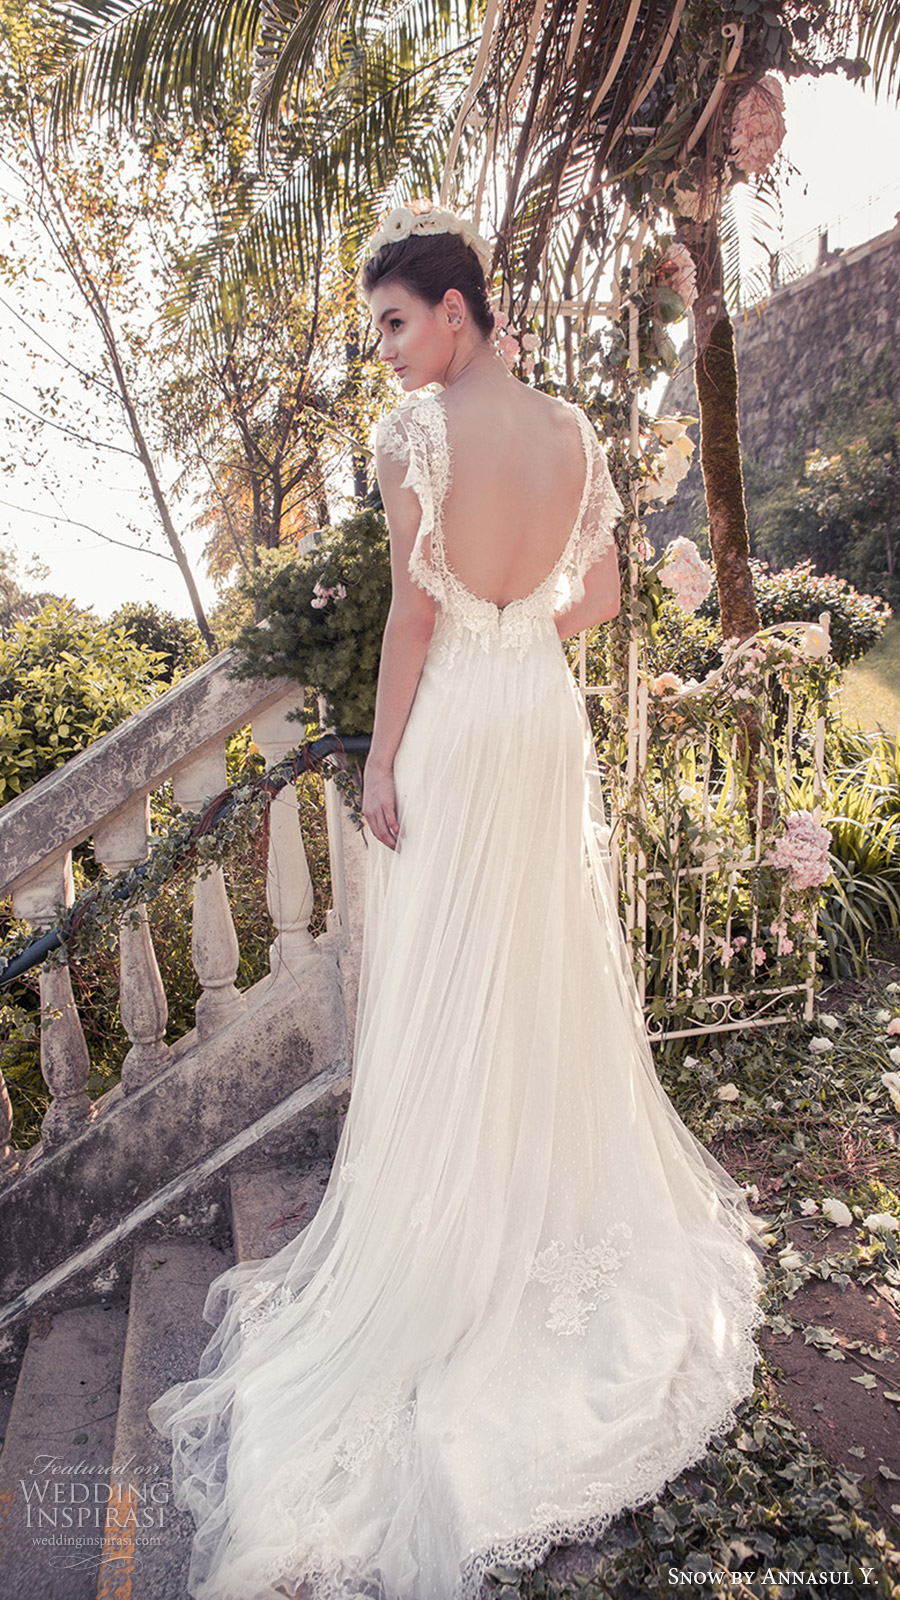 snow annasul y 2017 bridal (sa3333b) sleeveless illusion jewel neck sweetheart lace bodice a line wedding dress bv train open back